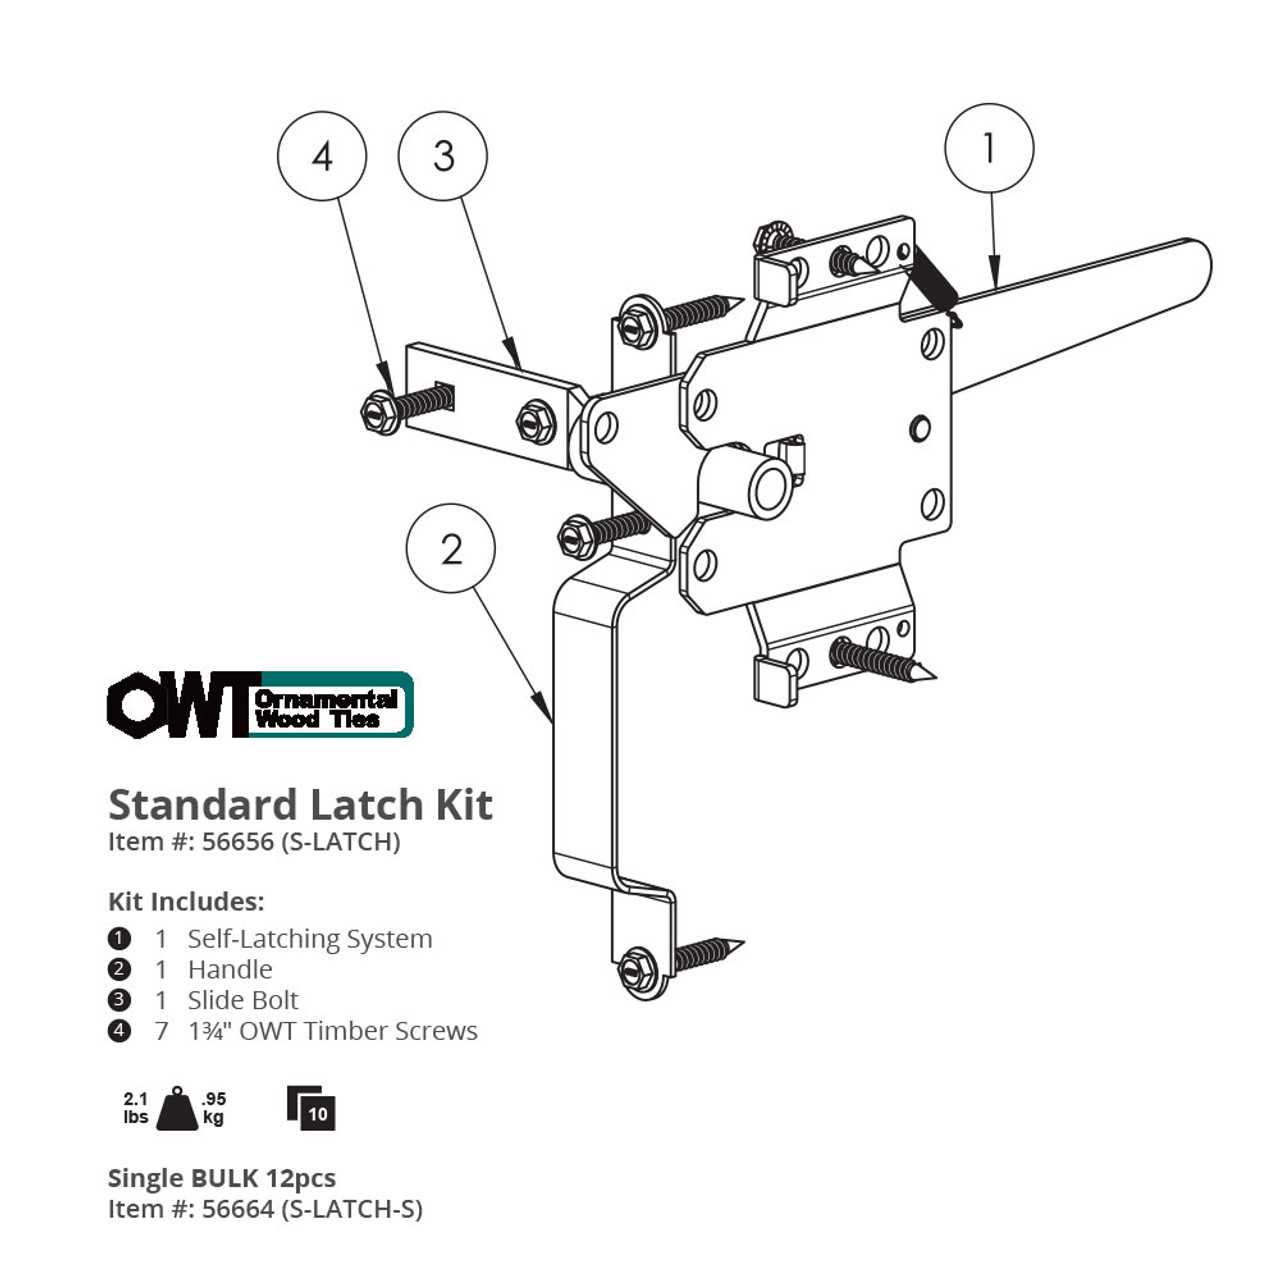 Drawing & Specifications for OZCO OWT 56656 Standard Gate Latch